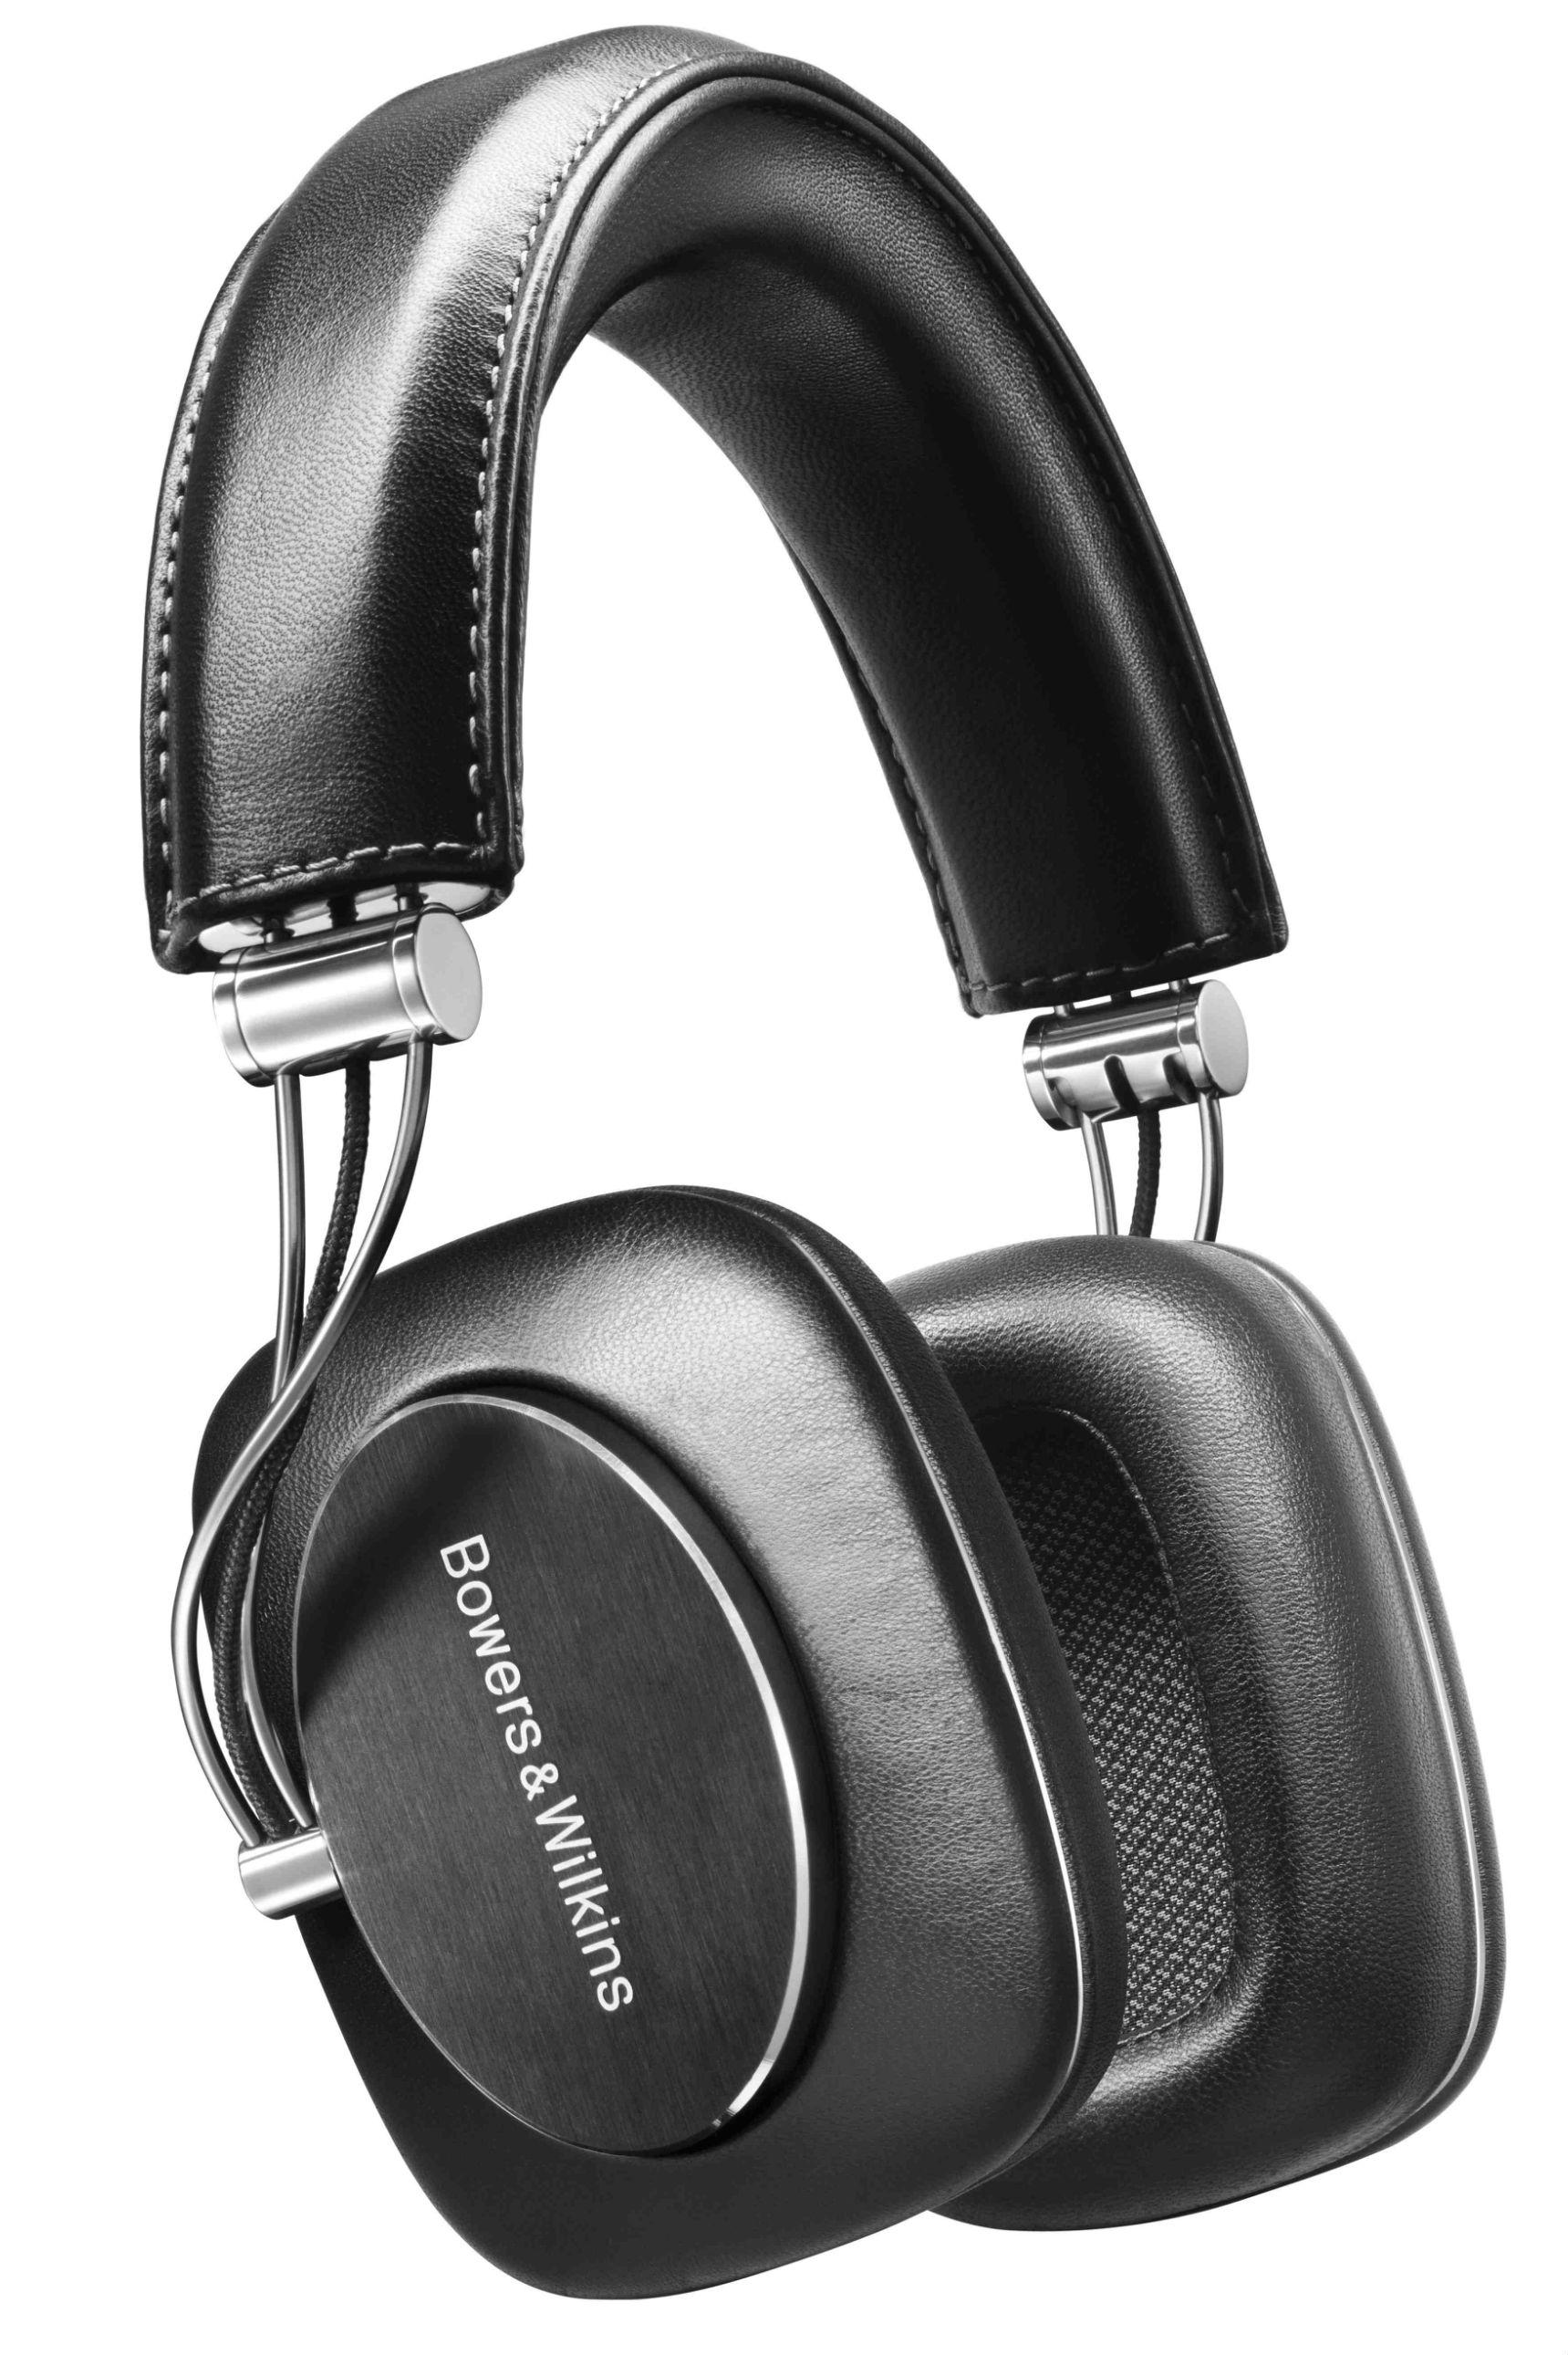 bowers and wilkins announces new p7 over ear headphones digital trends. Black Bedroom Furniture Sets. Home Design Ideas